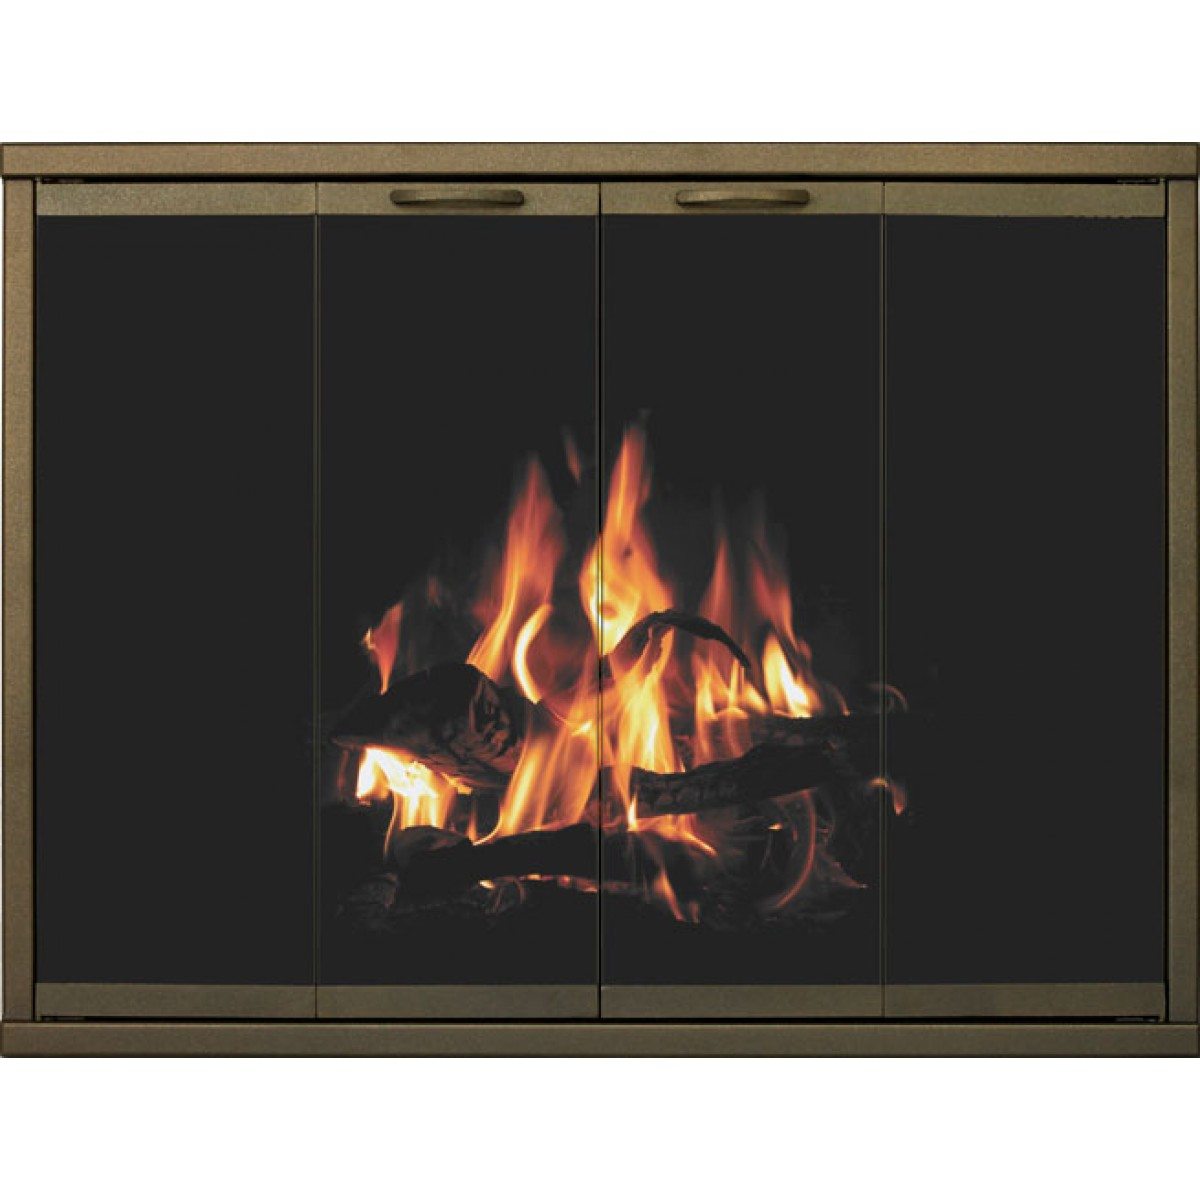 Incredible Fmi Fireplaces | Beautiful Fmi Fireplace Inserts